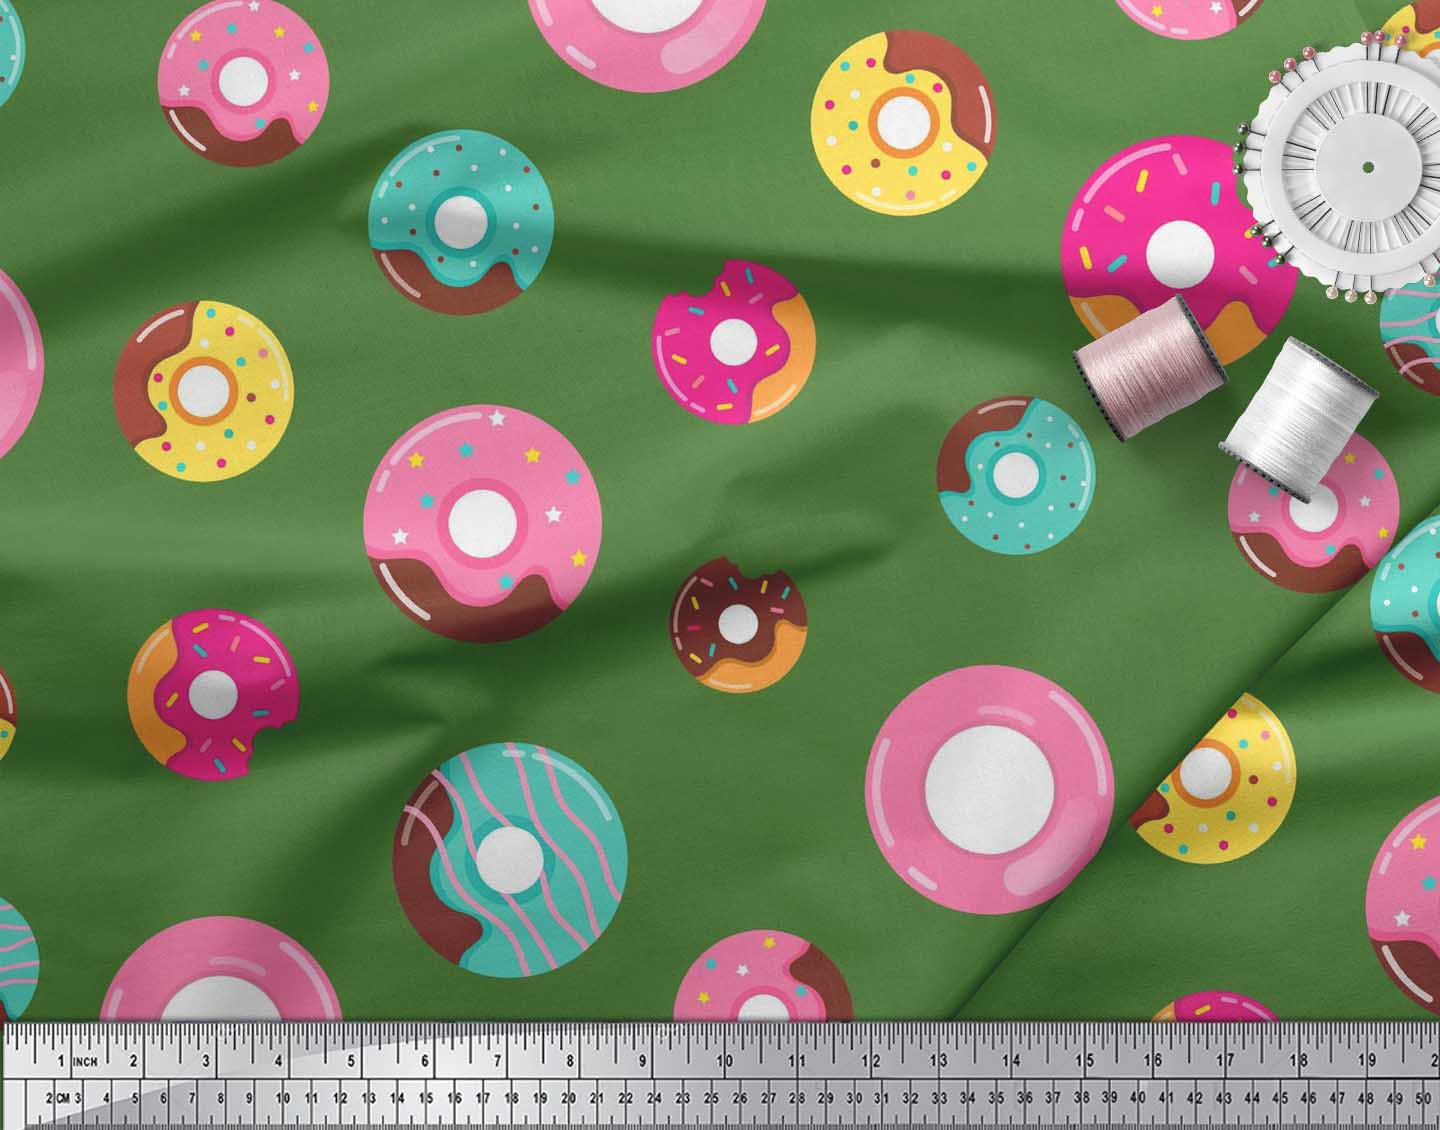 Soimoi-Green-Cotton-Poplin-Fabric-Donuts-Food-Printed-Fabric-1-metre-A7o thumbnail 3